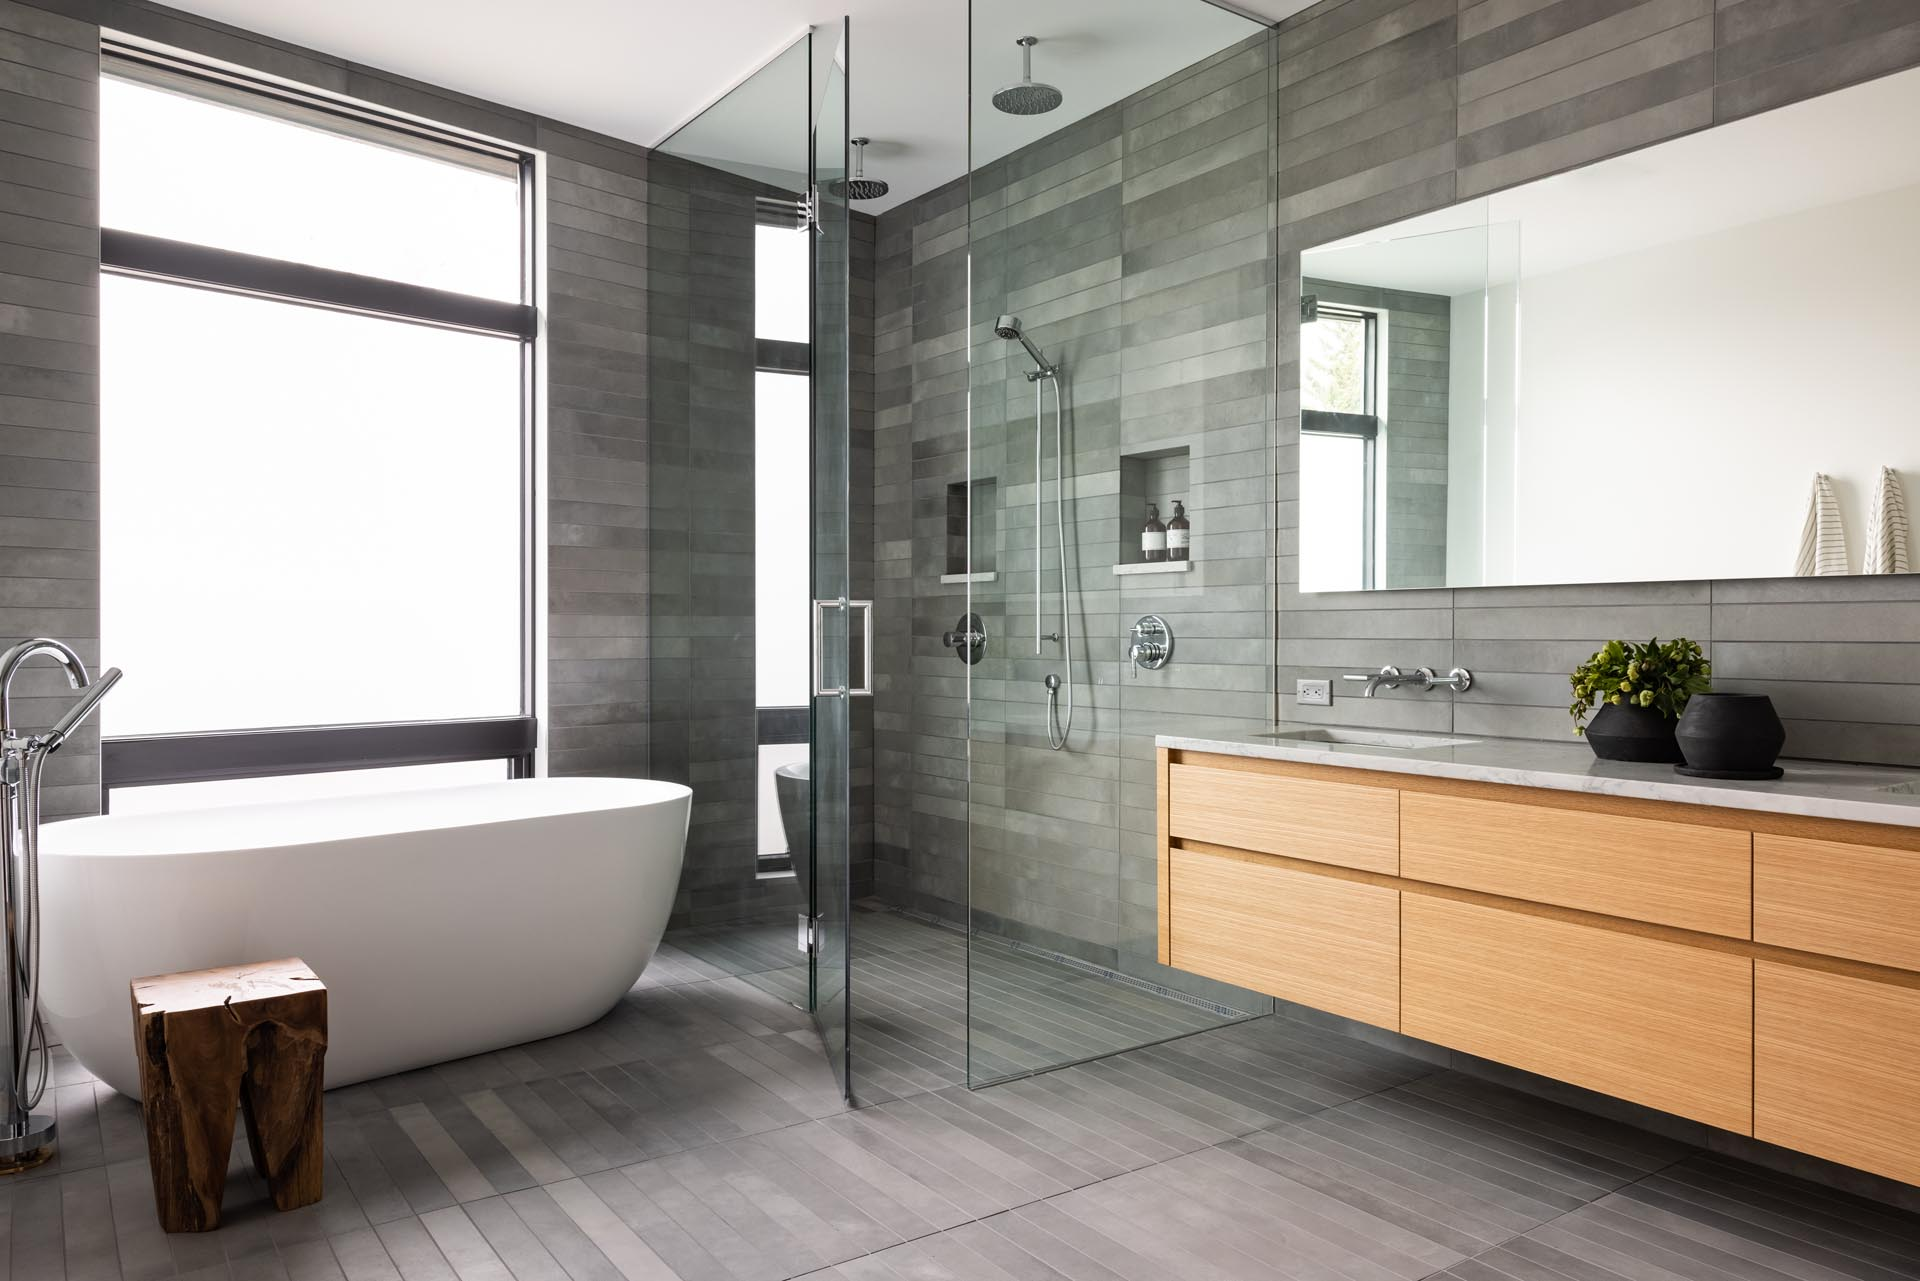 In this modern bathroom, grey tiles cover the walls and floor, while a floating wood vanity adds a natural element, and a white freestanding tub is positioned by the glass-enclosed shower.